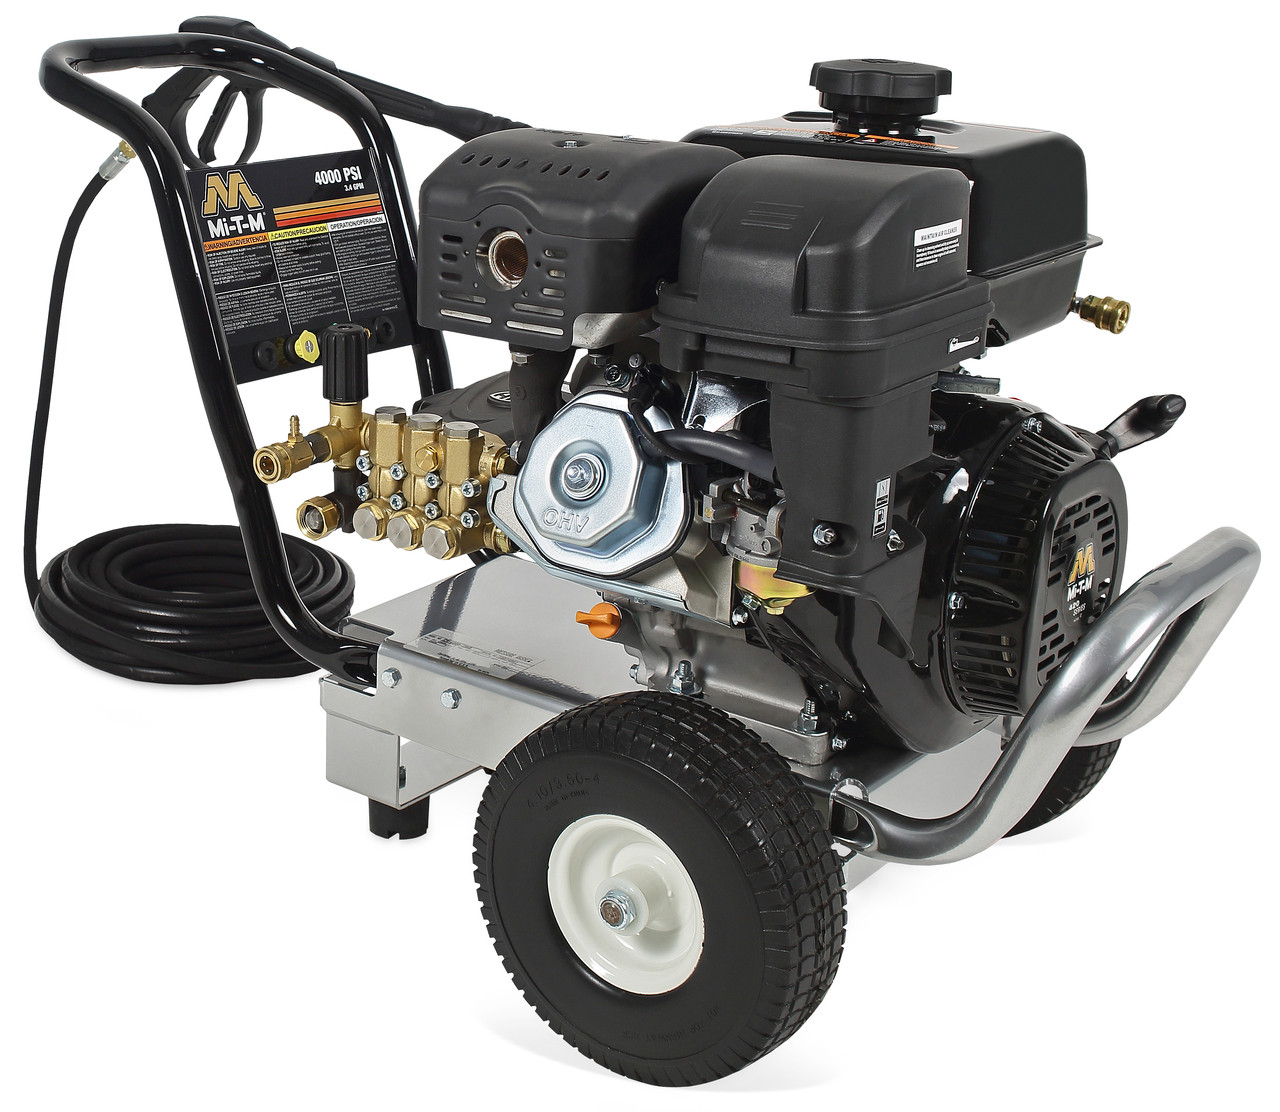 medium resolution of mi t m choremaster pressure washer cm 4000 1mmb 4000 psi 3 4 gpm mi t m wiring diagram